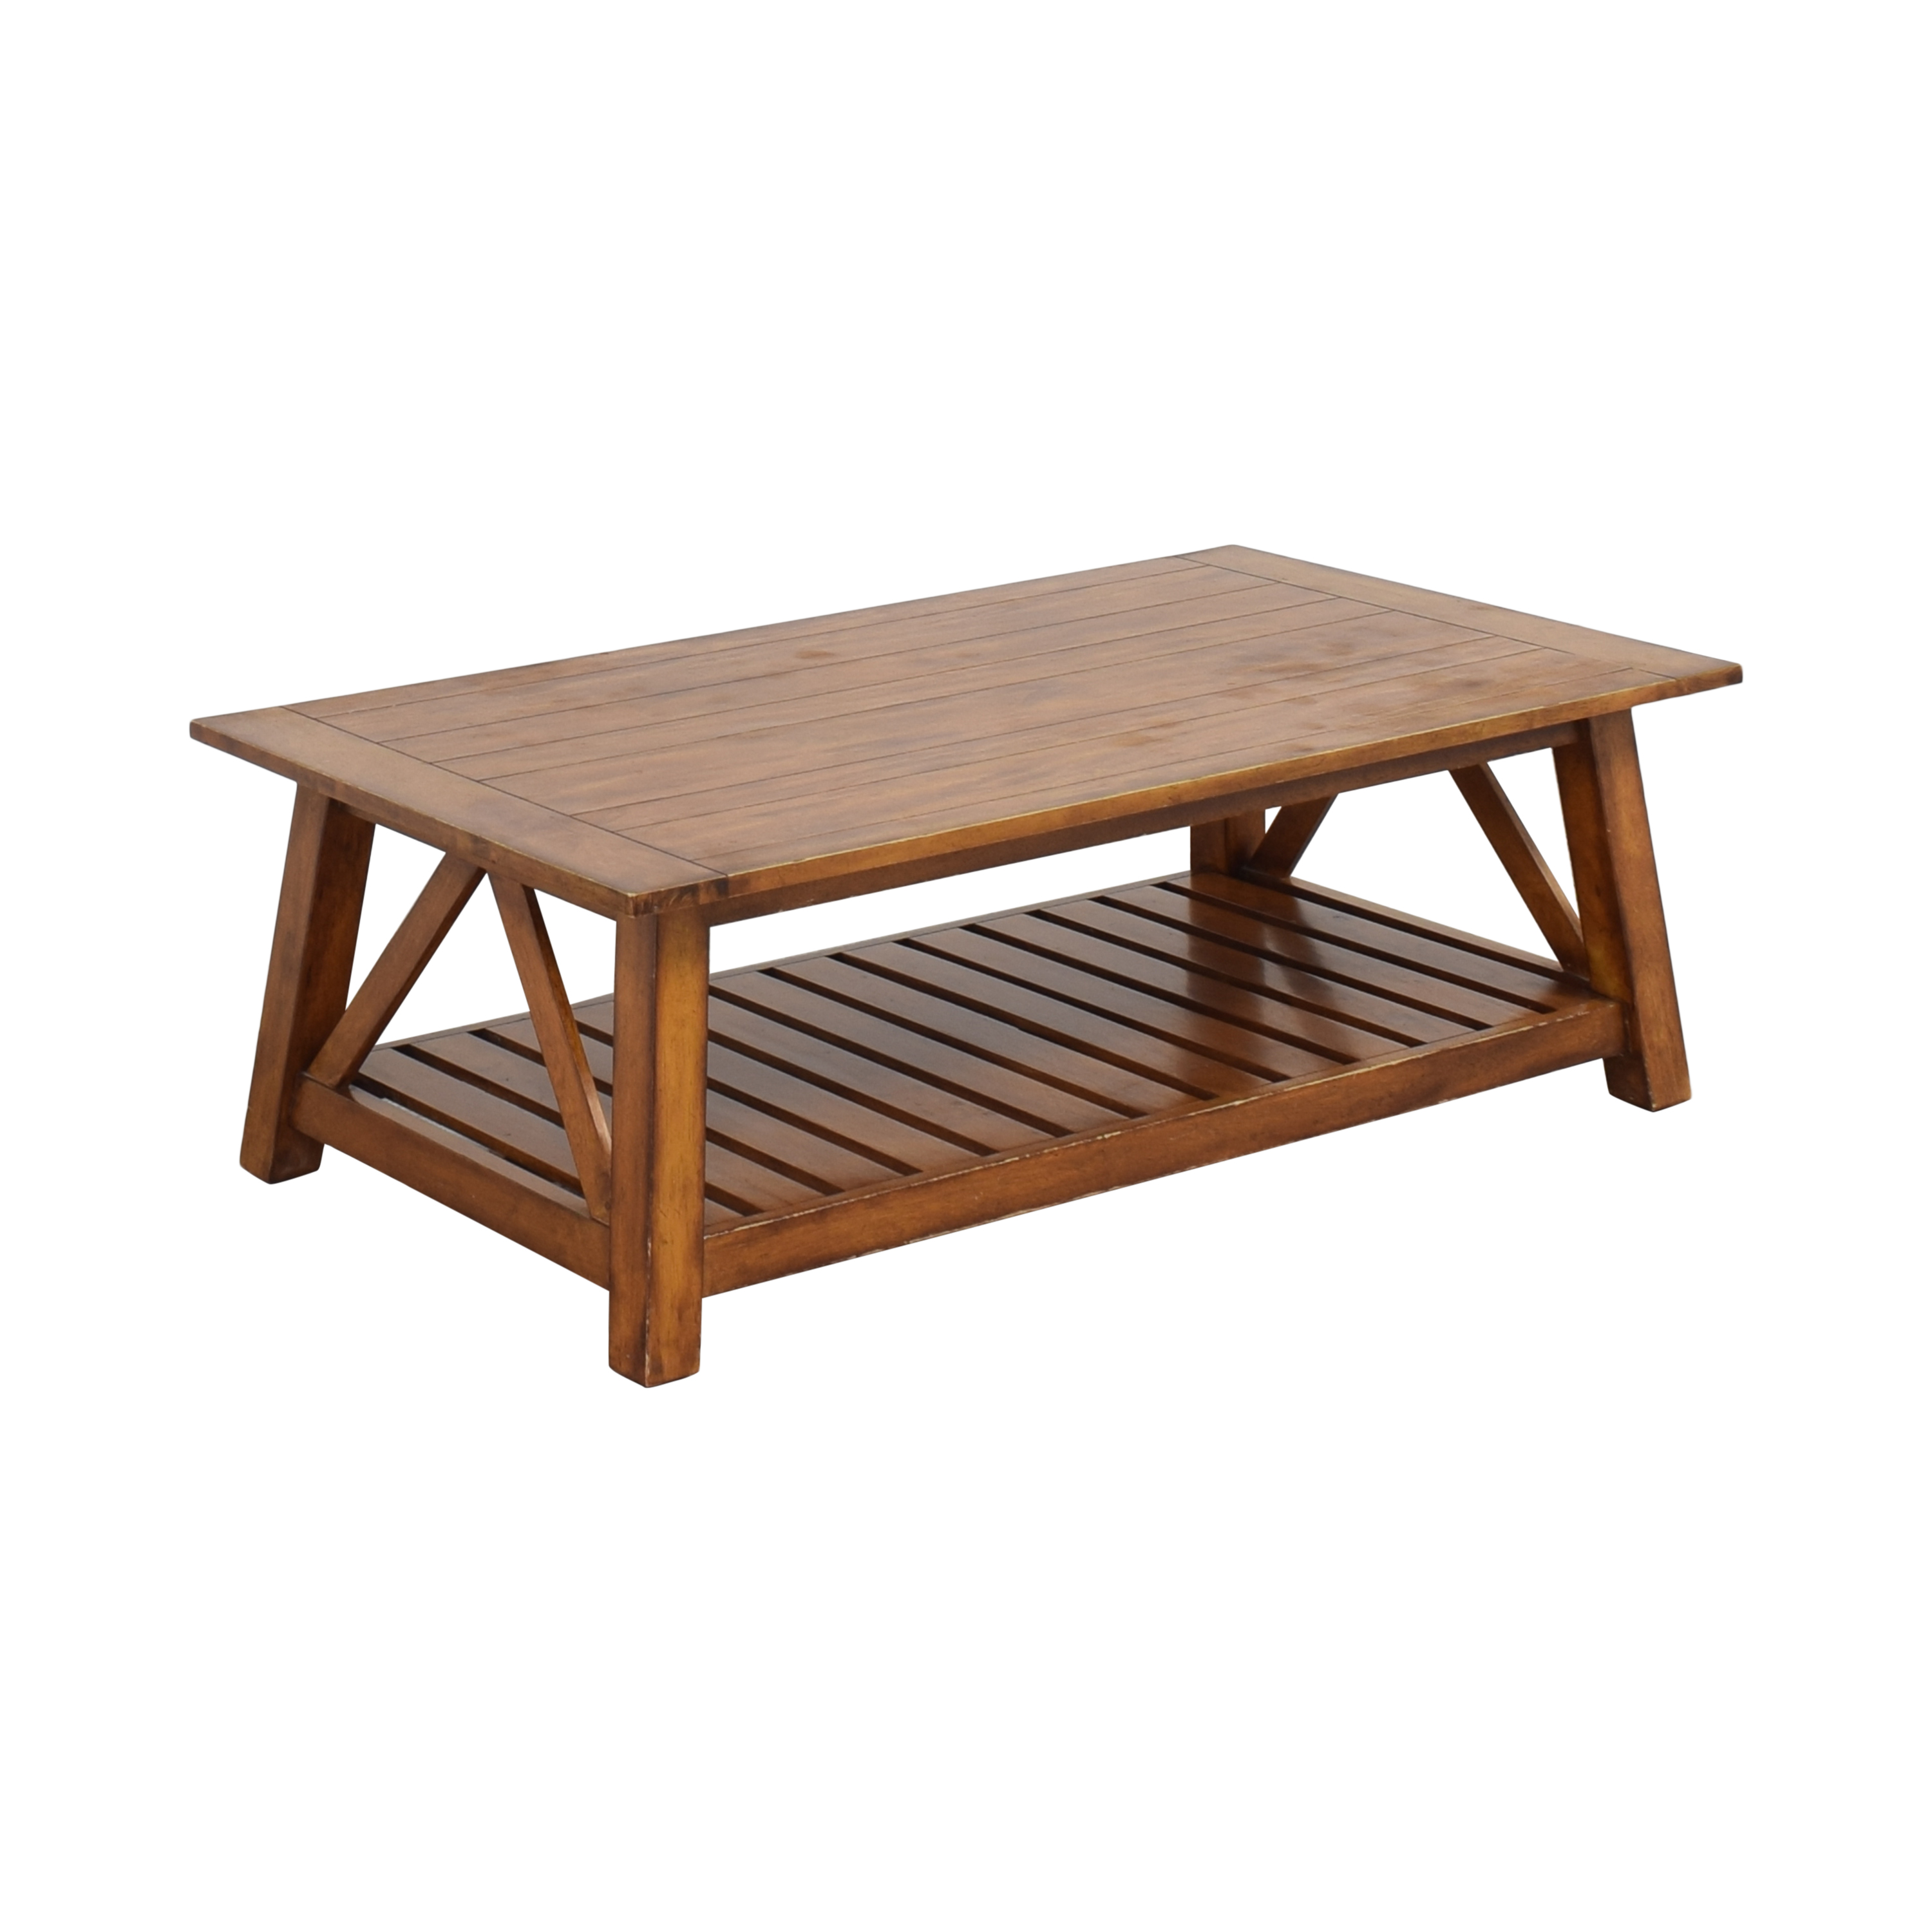 Ethan Allen Cottage Coffee Table / Tables